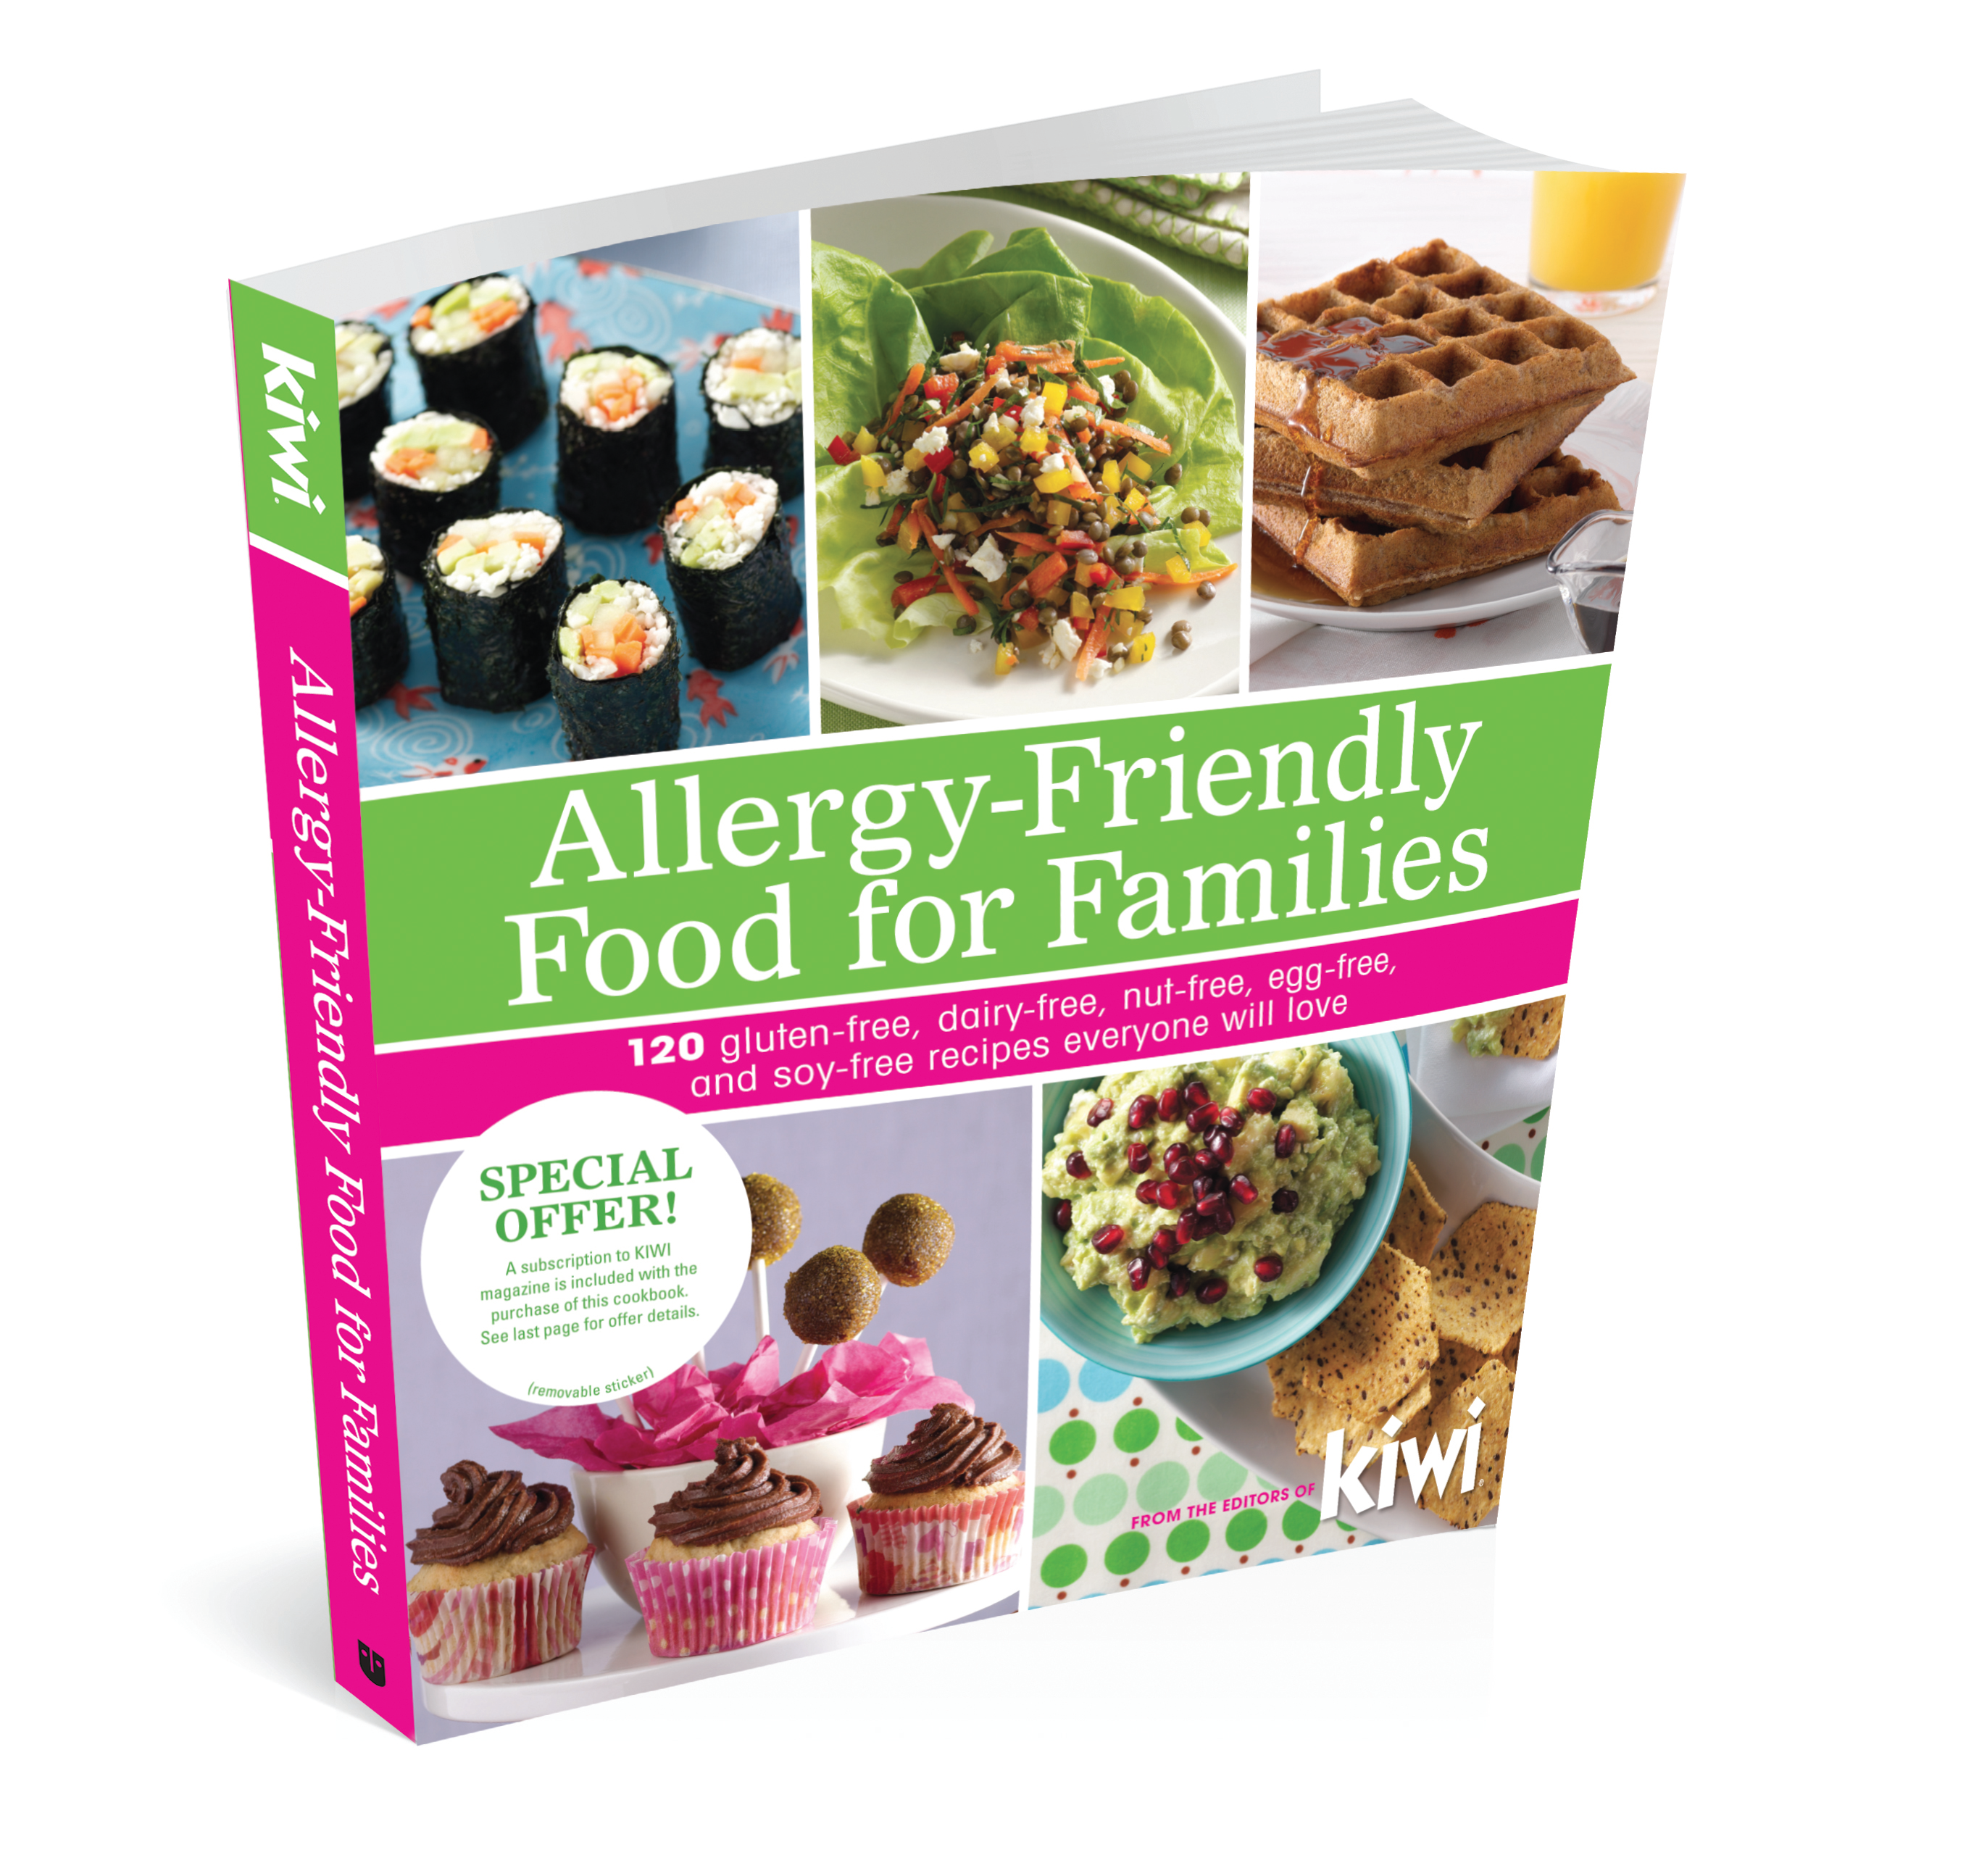 Kiwis first cookbook on sale in april books i love pinterest allergy friendly food for families edwards foods market book forumfinder Choice Image